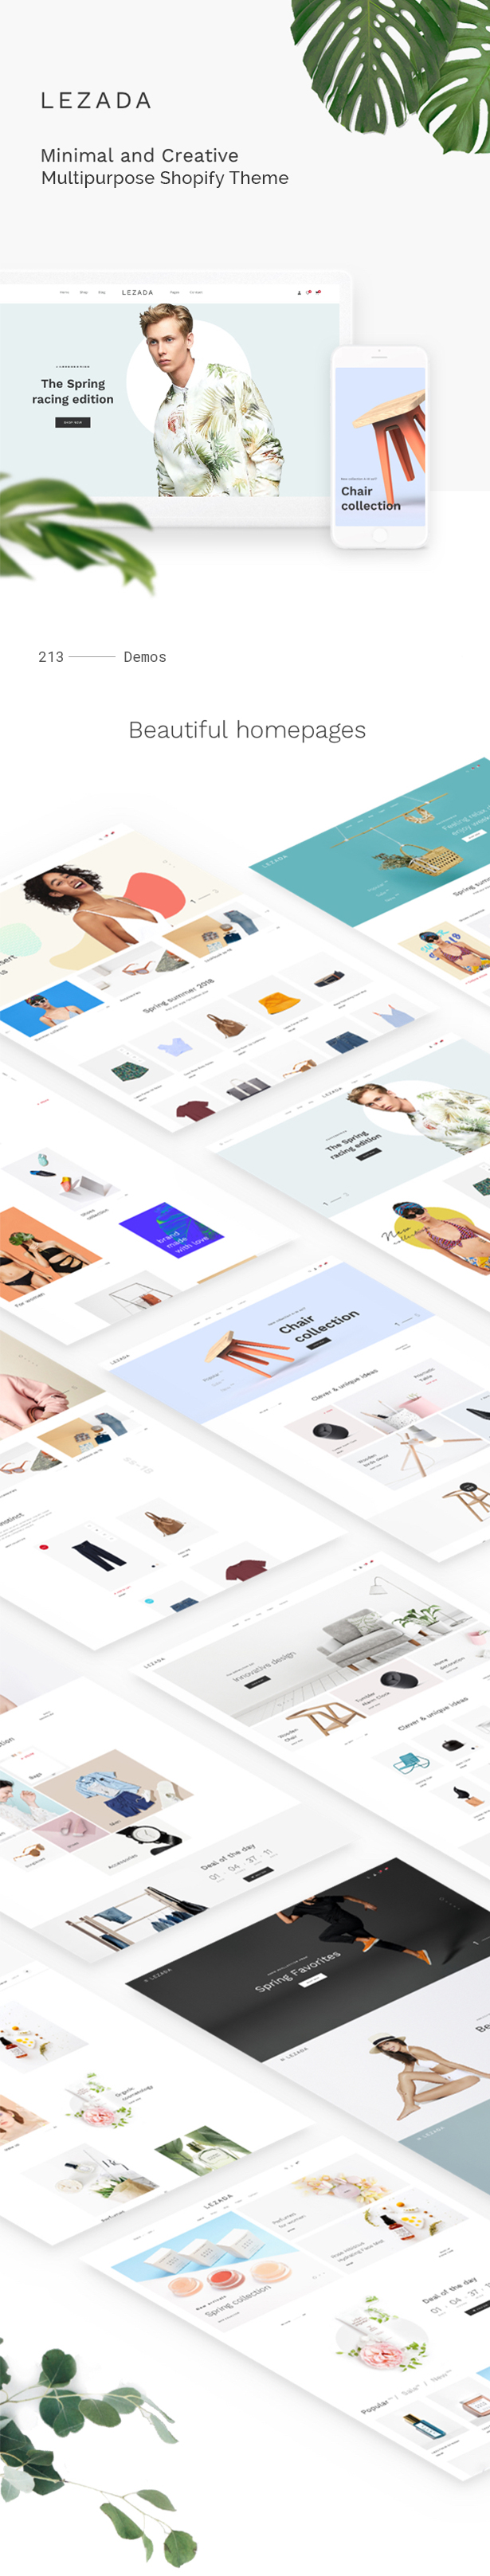 Lezada - Multipurpose Shopify Theme - 4